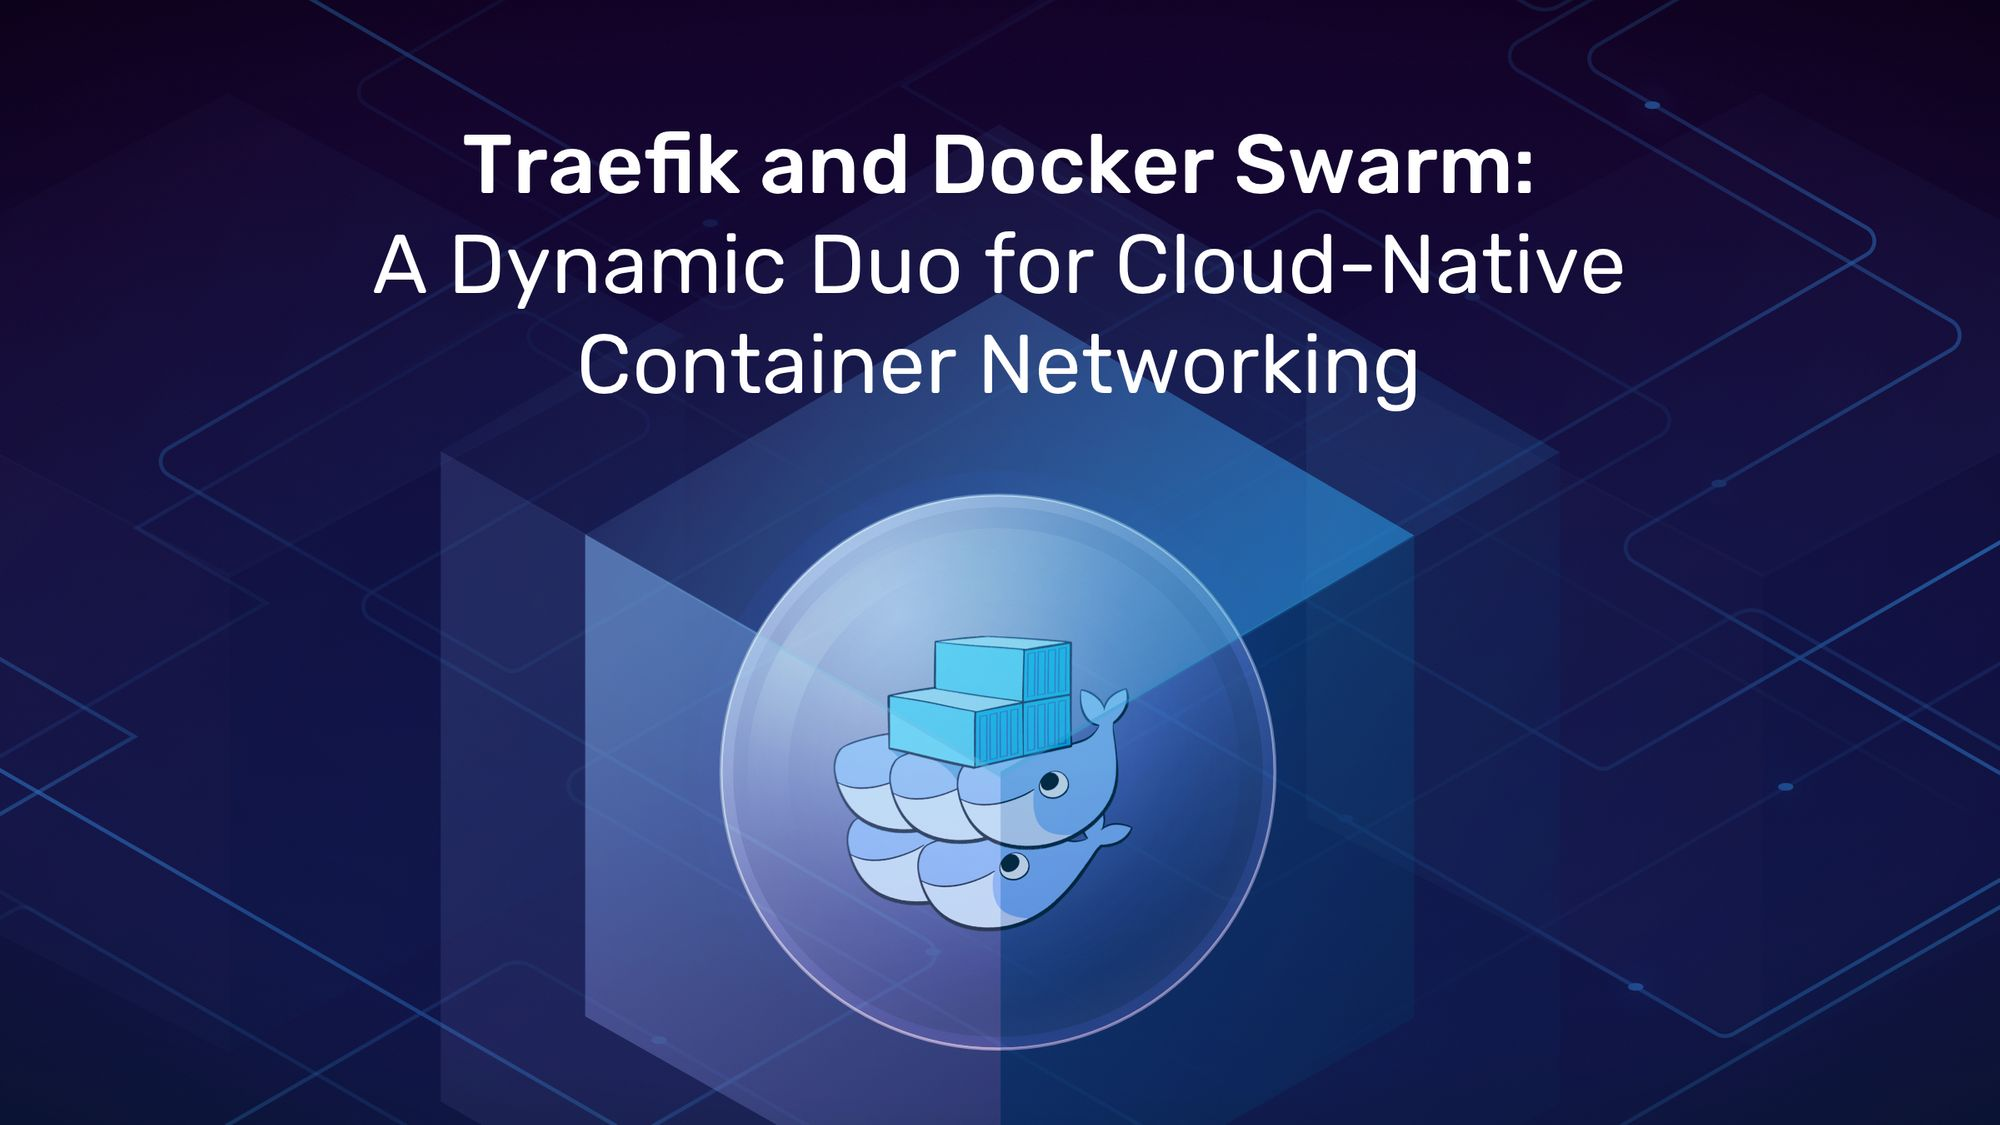 Traefik and Docker Swarm: A Dynamic Duo for Cloud-Native Container Networking